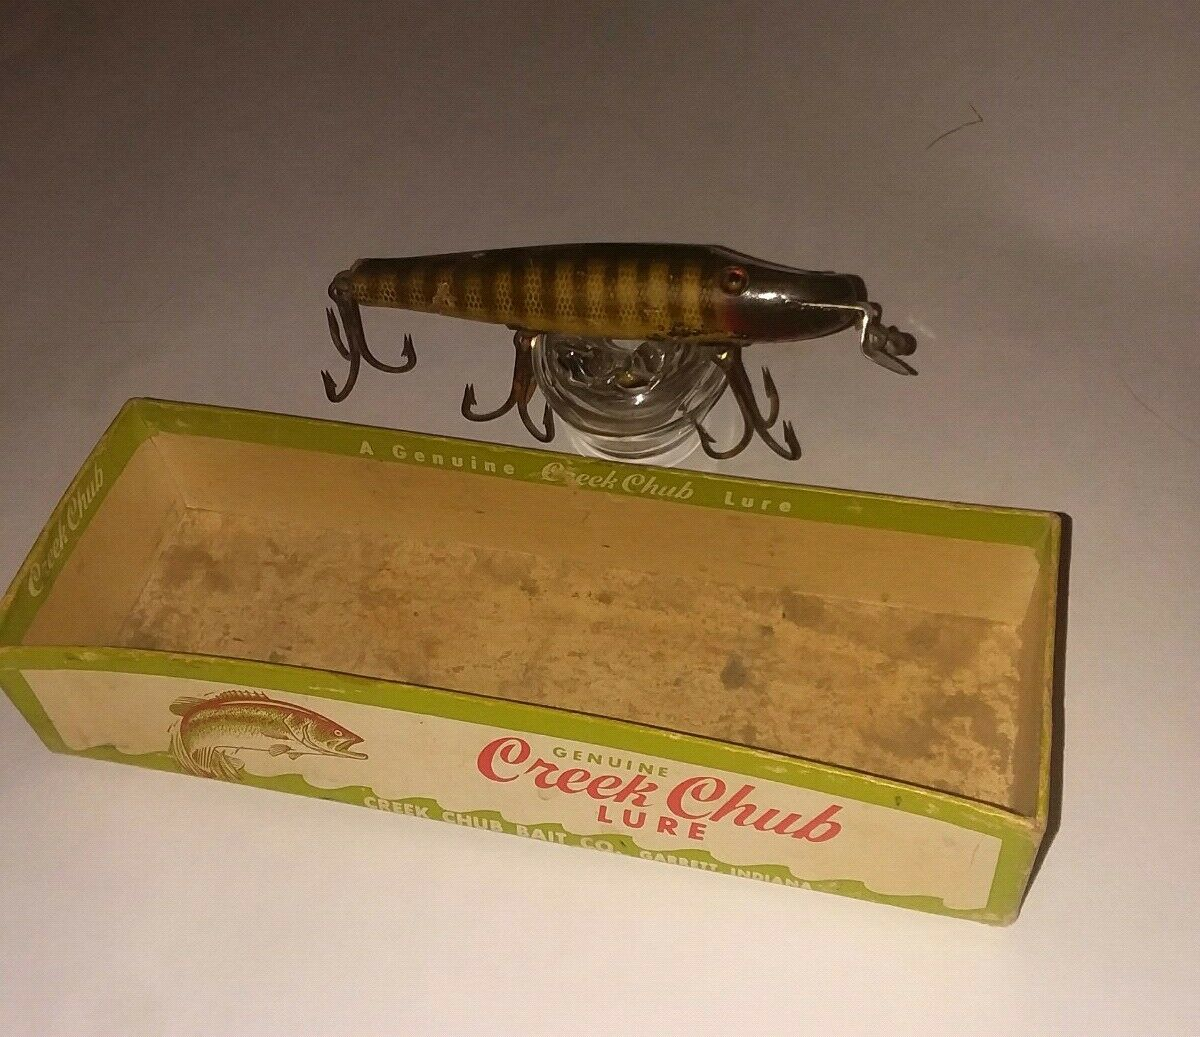 Creek Chub Pikie Minnow 700 In Box In Pike Scale Wood Vintage Collectible Lure